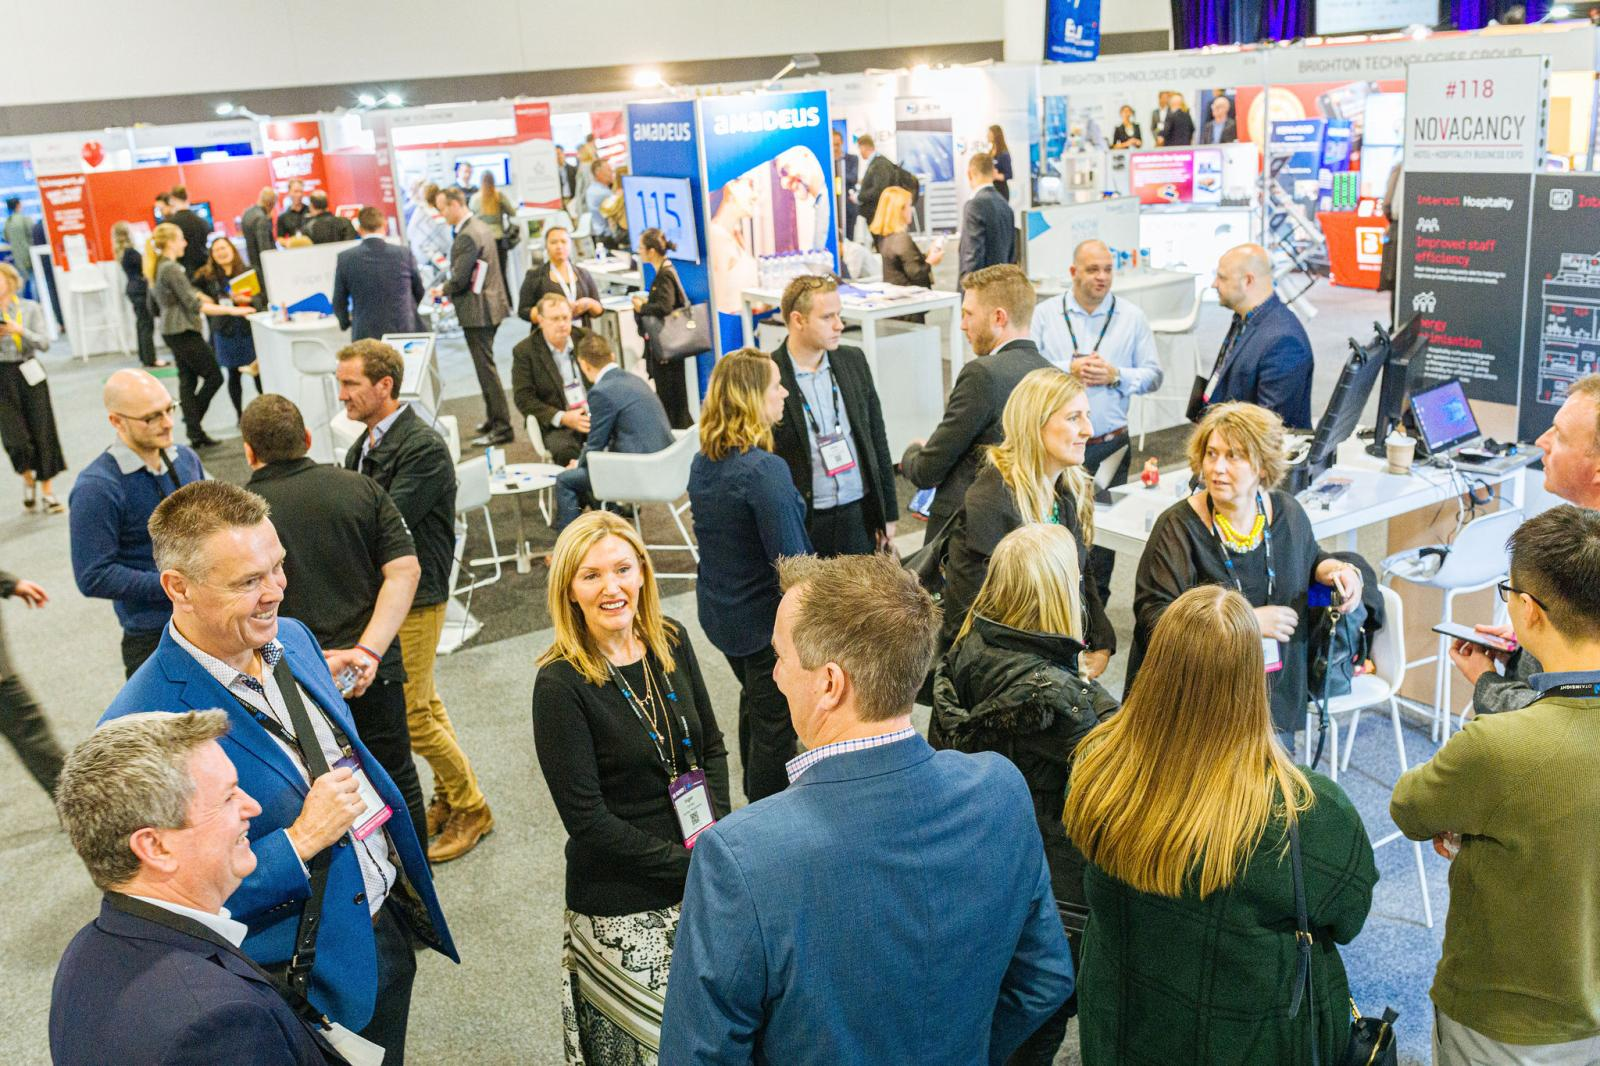 Novacancy Hotel Accommodation Industry Expo 23 24 March 2021